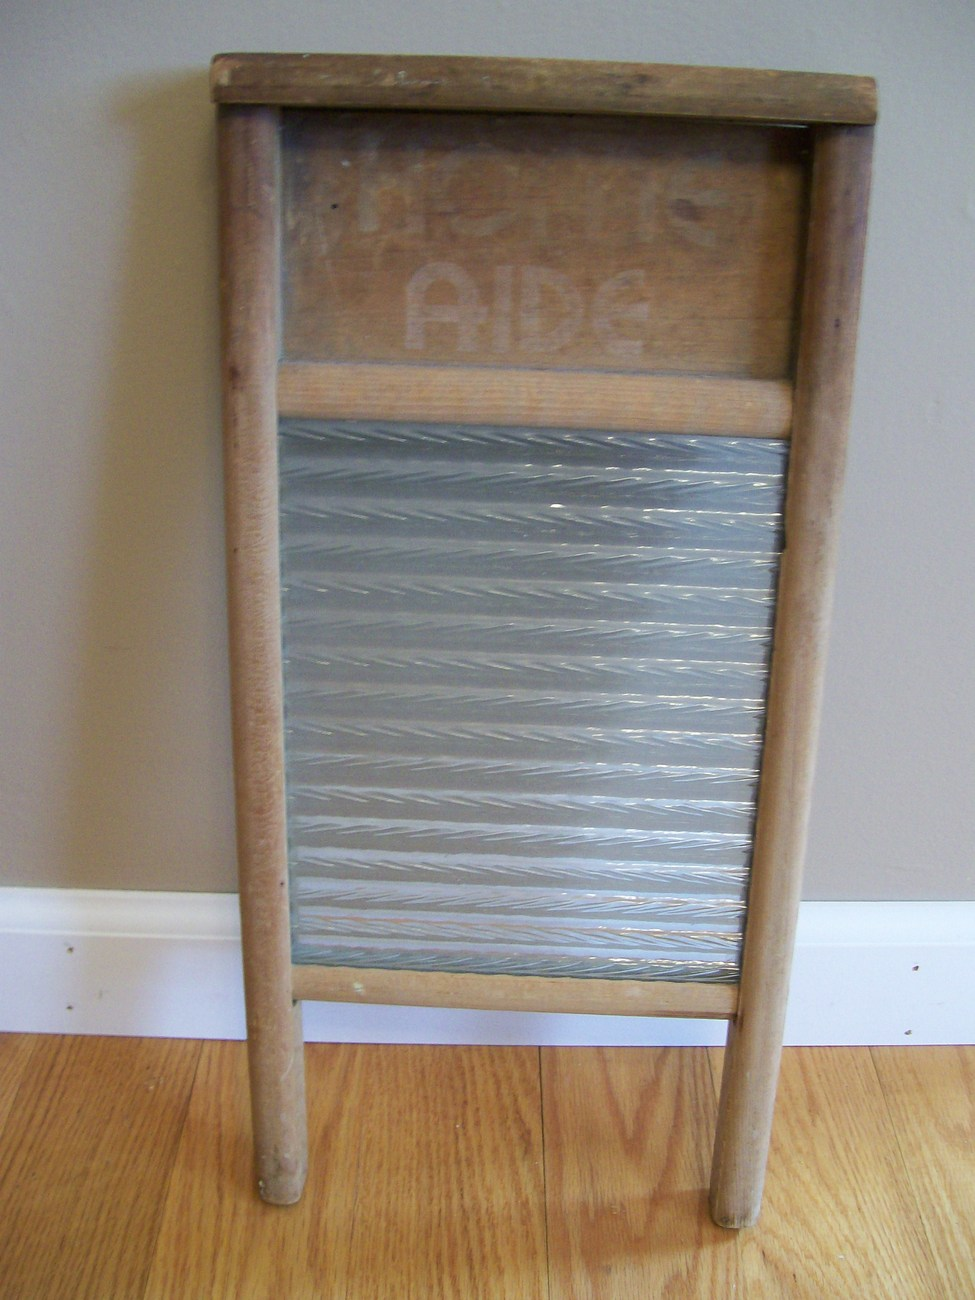 Vintage Home Aide wood and glass washboard. Columbus Washboard Co. - Ohio.